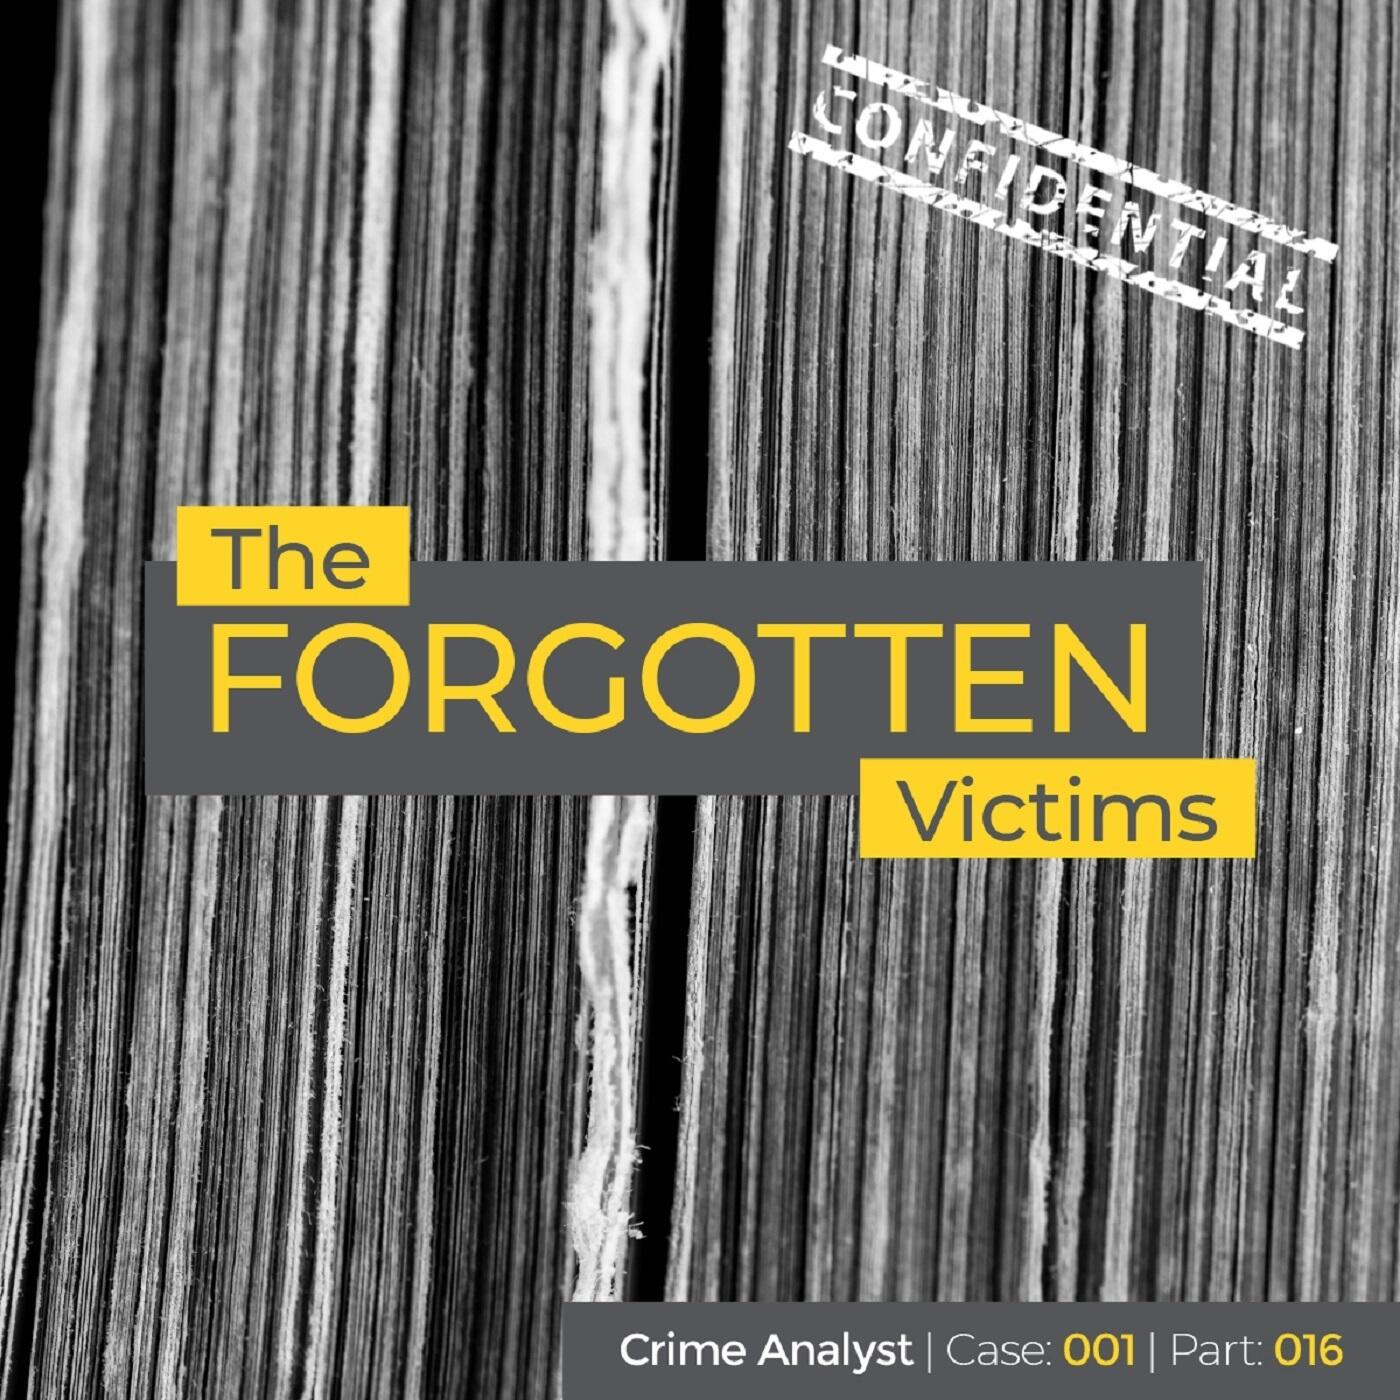 16: The Forgotten Victims | Part 16 | The Byford Report, the Missing Pages and Other Potentially Linked Offences